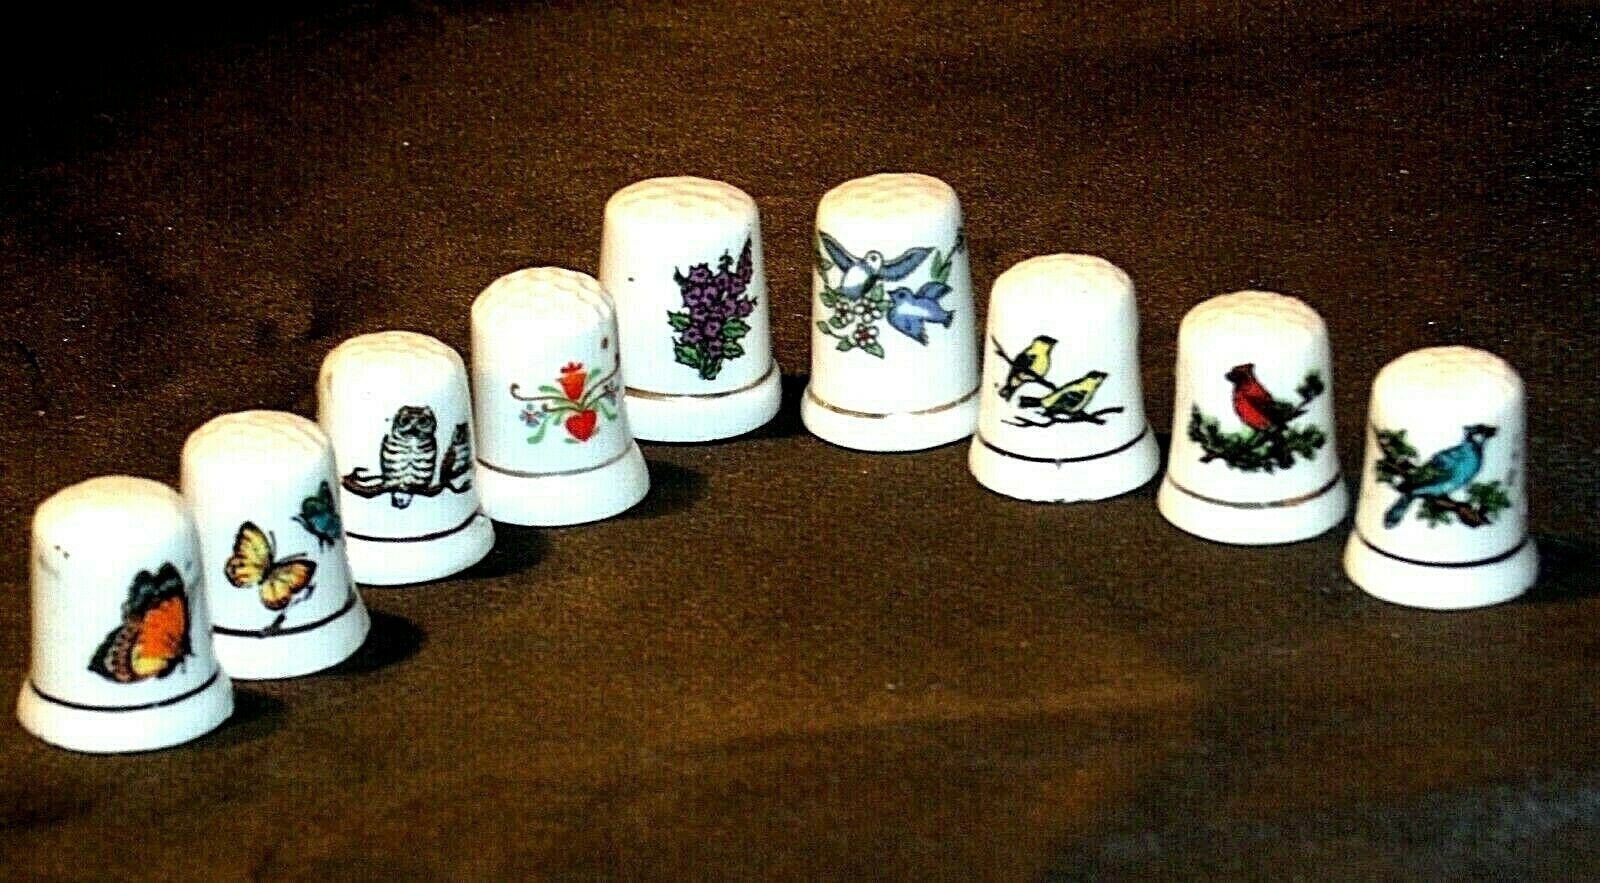 9 Porcelain Thimbles of Birds, Flowers and Butterfly's AB 273a Vintage